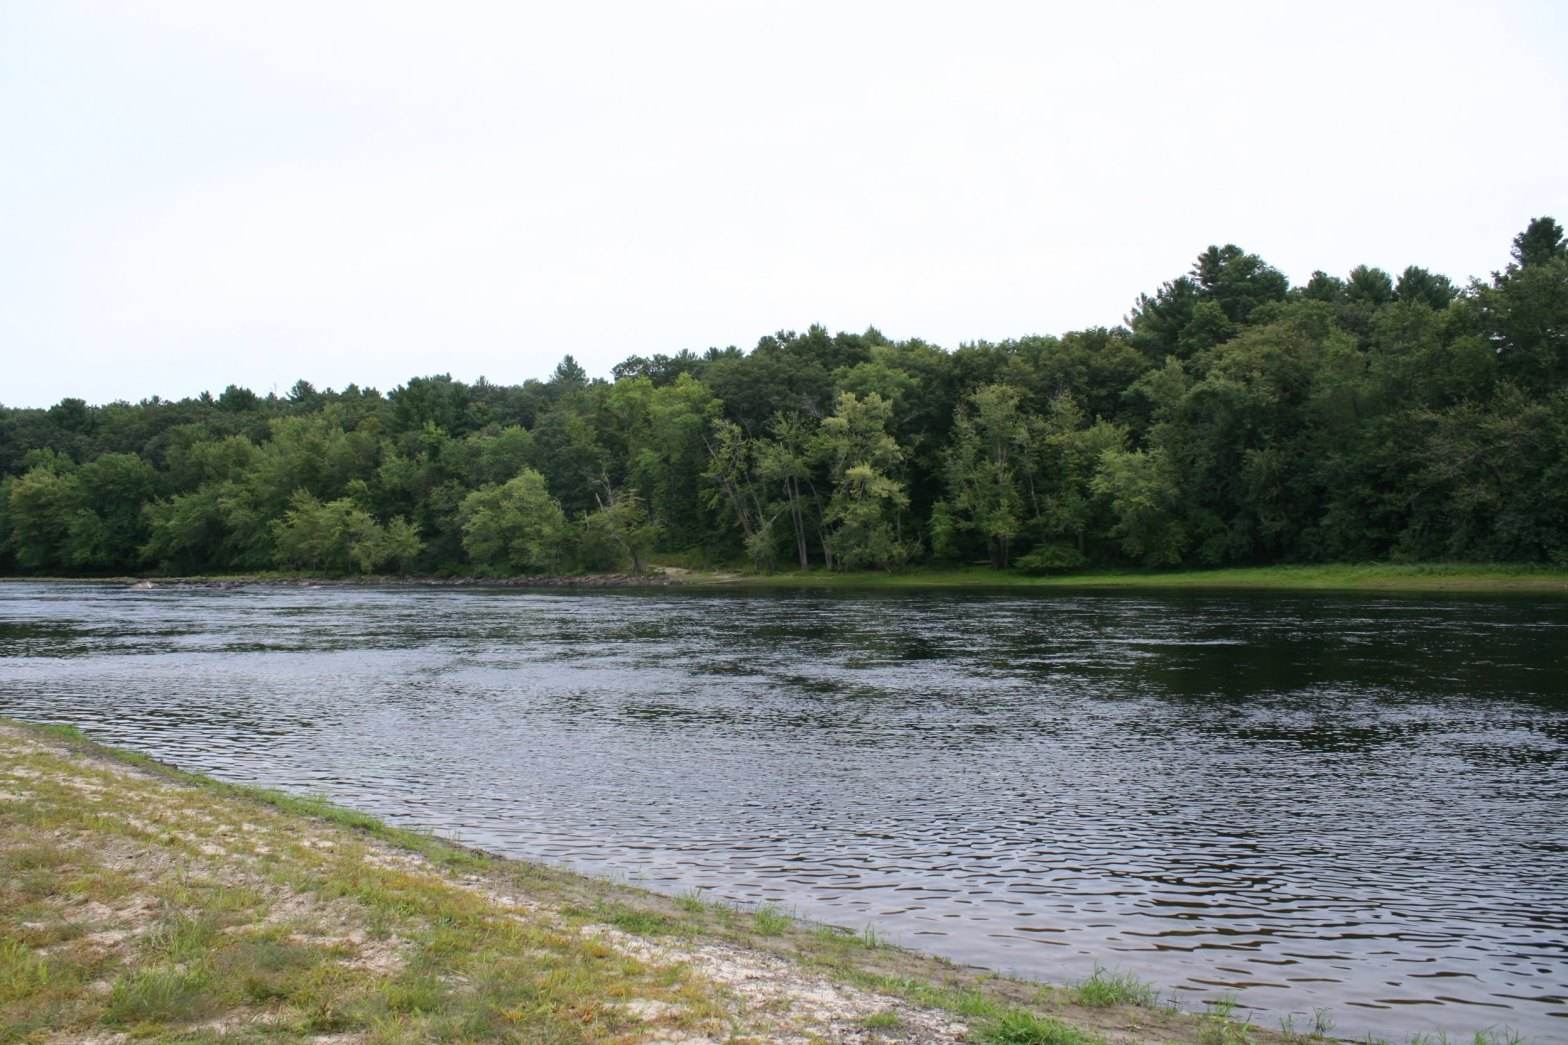 A blue river flowing between two pieces of land. Both river banks have green grass and some sand. One side of the river has many leafy trees growing in a forest.